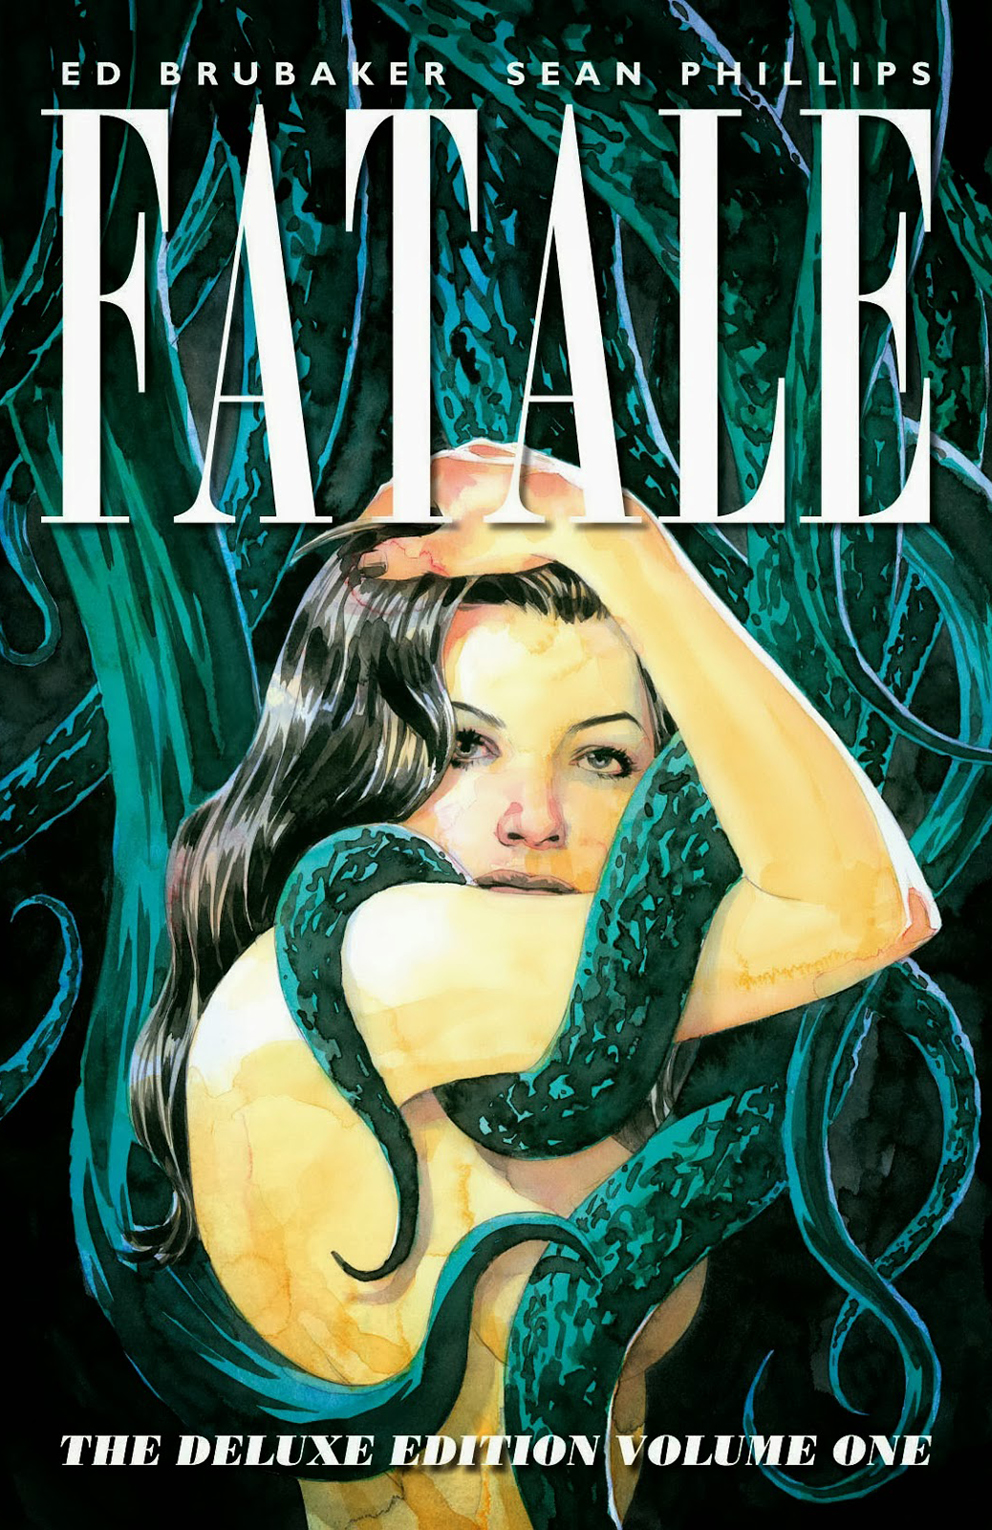 fataledeluxecover2a-01 (1)